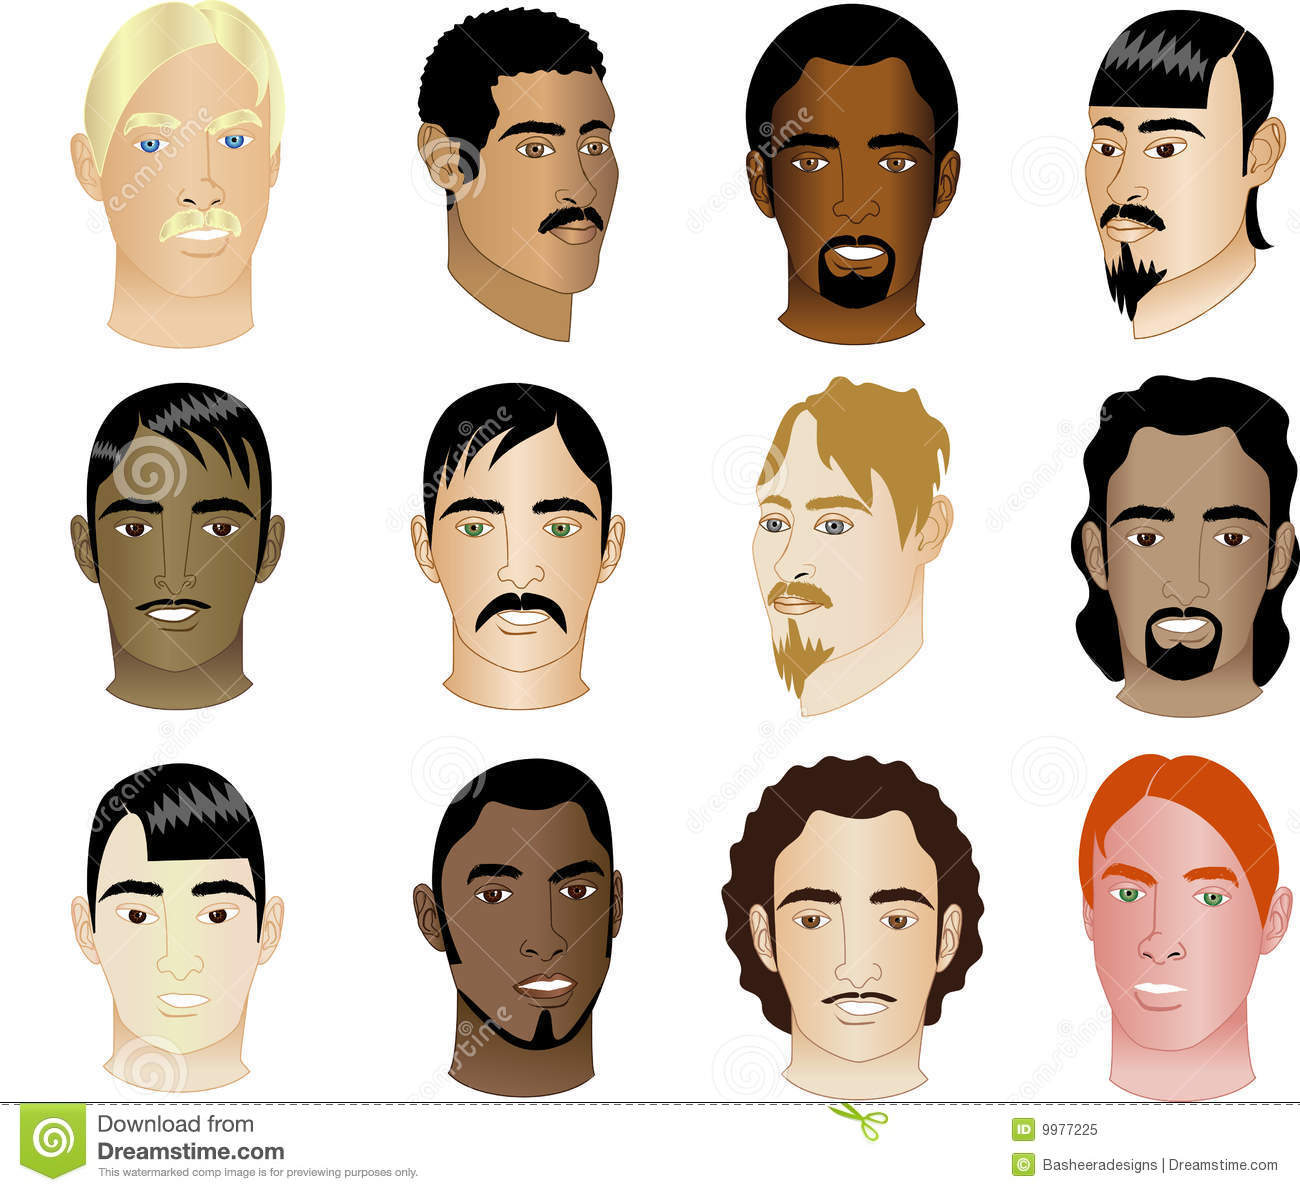 Twelve Men39;s Faces Different Races amp; Cultural Royalty Free Stock Phot